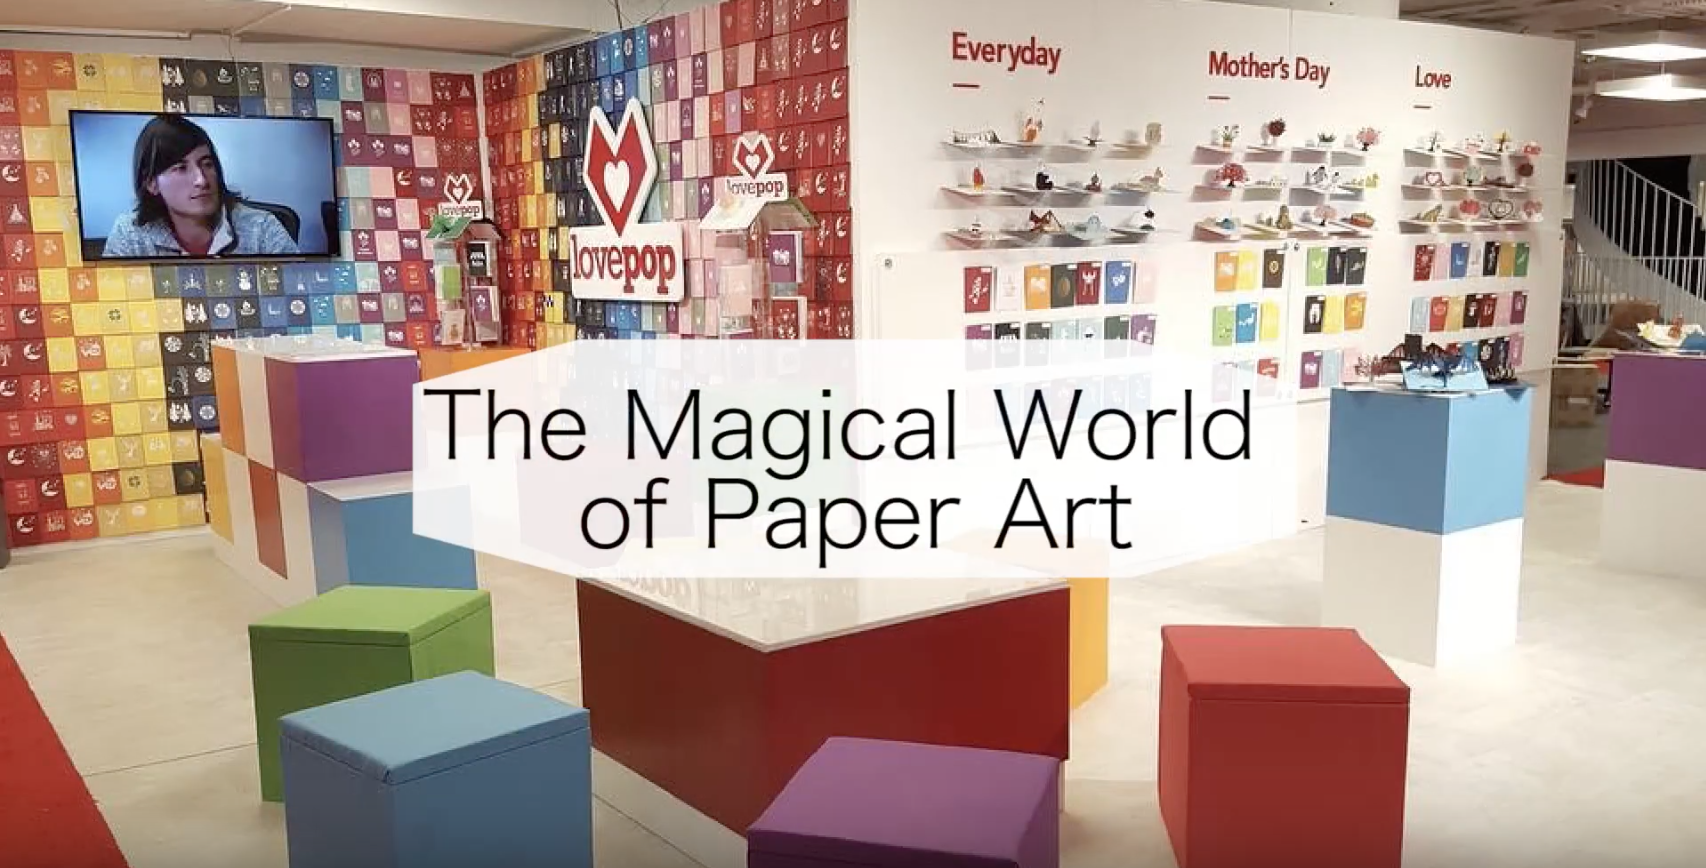 If you haven't experienced the dynamic, exquisite world that is Lovepop Cards, here's your chance! Join Stationery Trends Editor-in-Chief Sarah Schwartz on a Magical Moments Tour through Lovepop's bustling booth at AmericasMart: https://youtu.be/kg53oSSPHK8 {Sponsored}